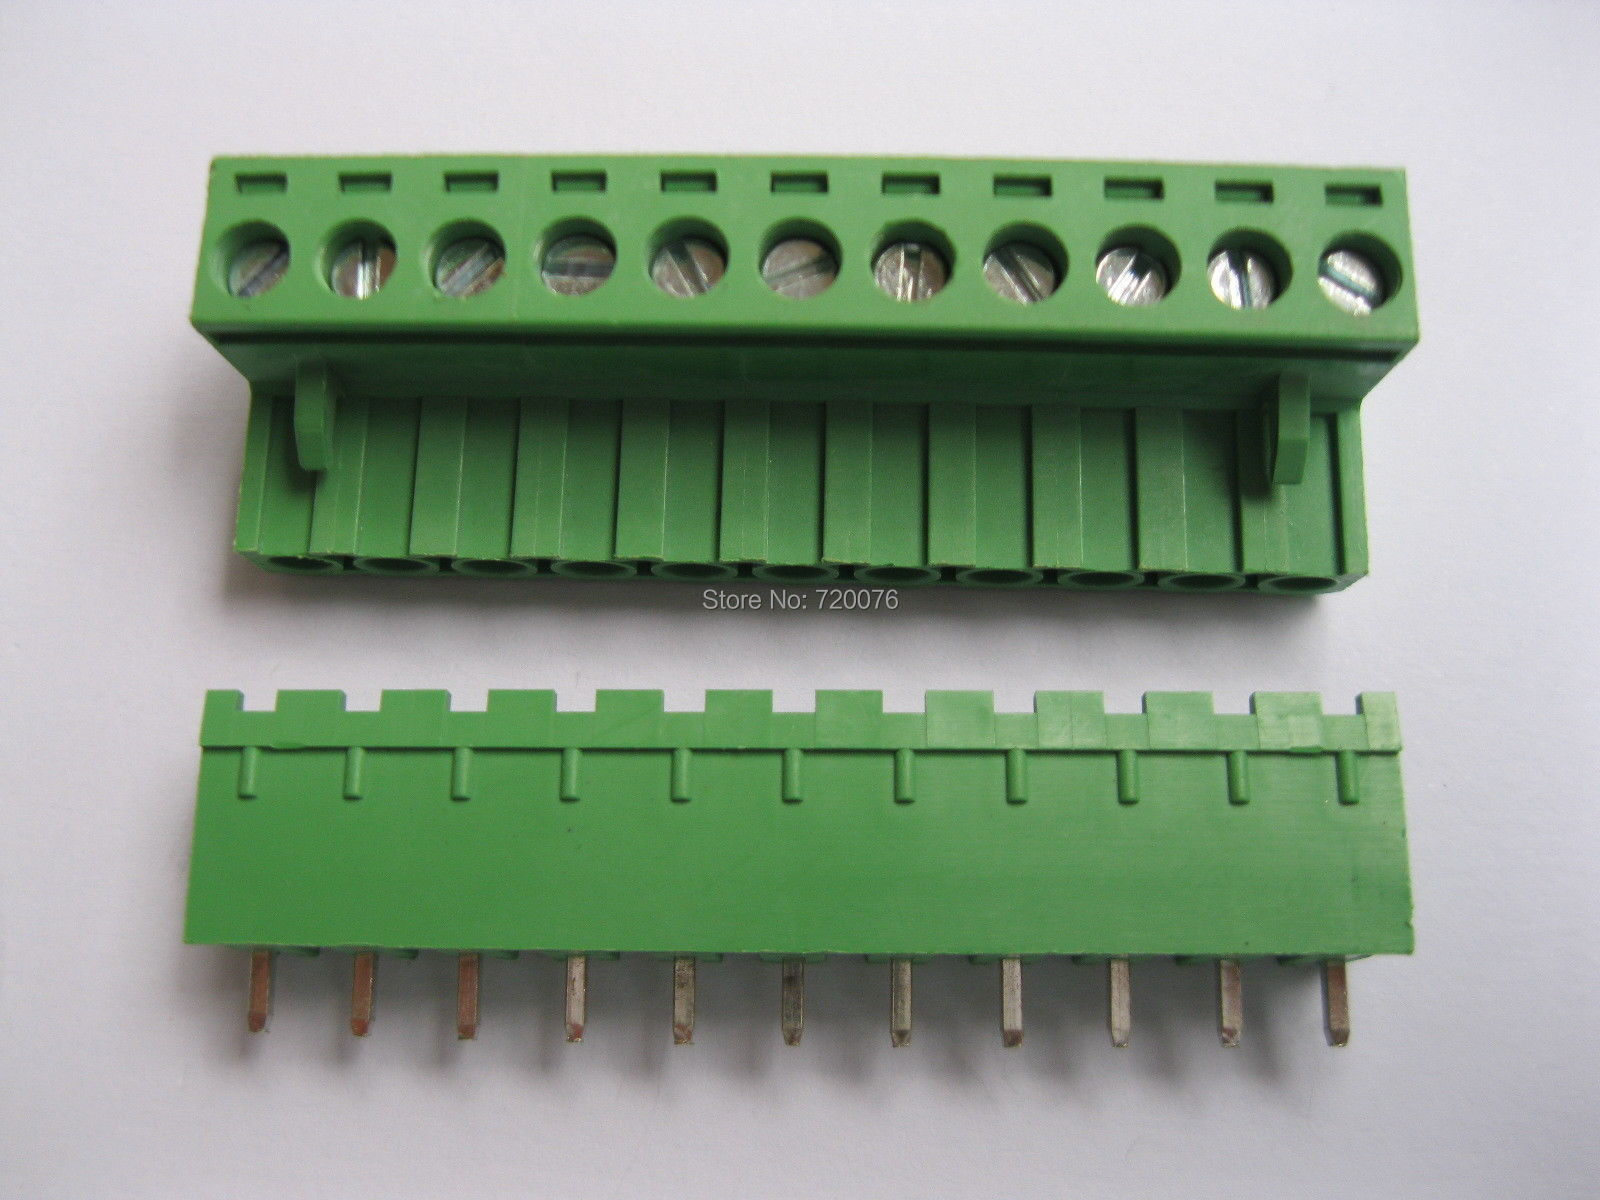 30 pcs Green 11 pin 5.08mm Screw Terminal Block Connector Pluggable Type 5 pcs 400v 20a 7 position screw barrier terminal block bar connector replacement